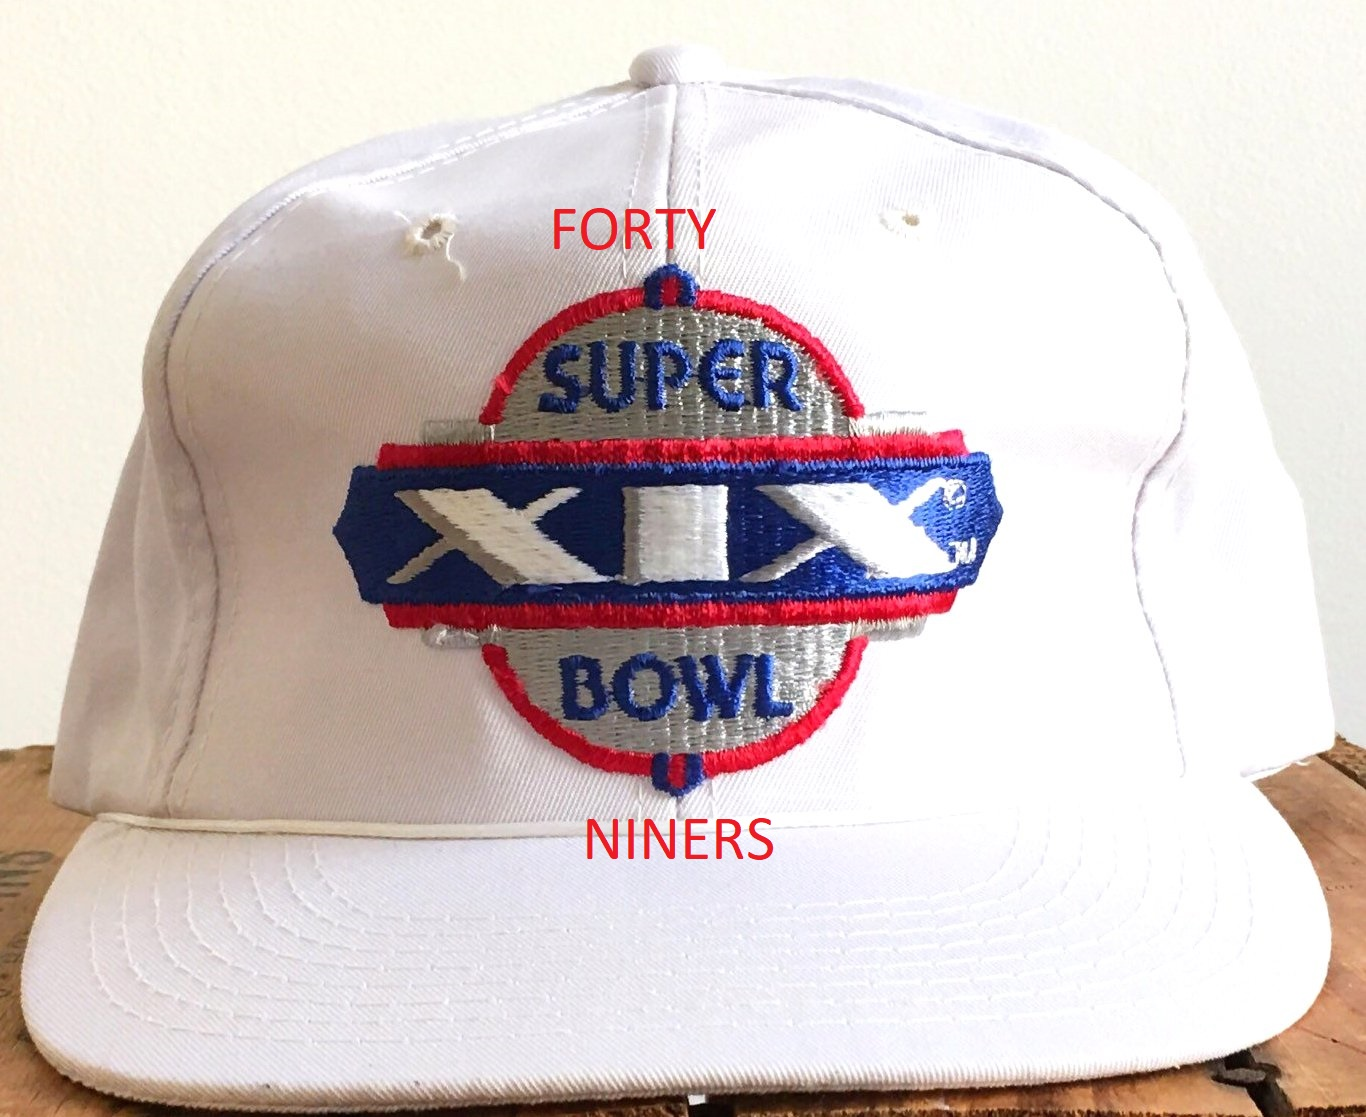 c269697c0 An image relevant to this listing. NFL Vintage San Francisco 49ers Super  Bowl ...